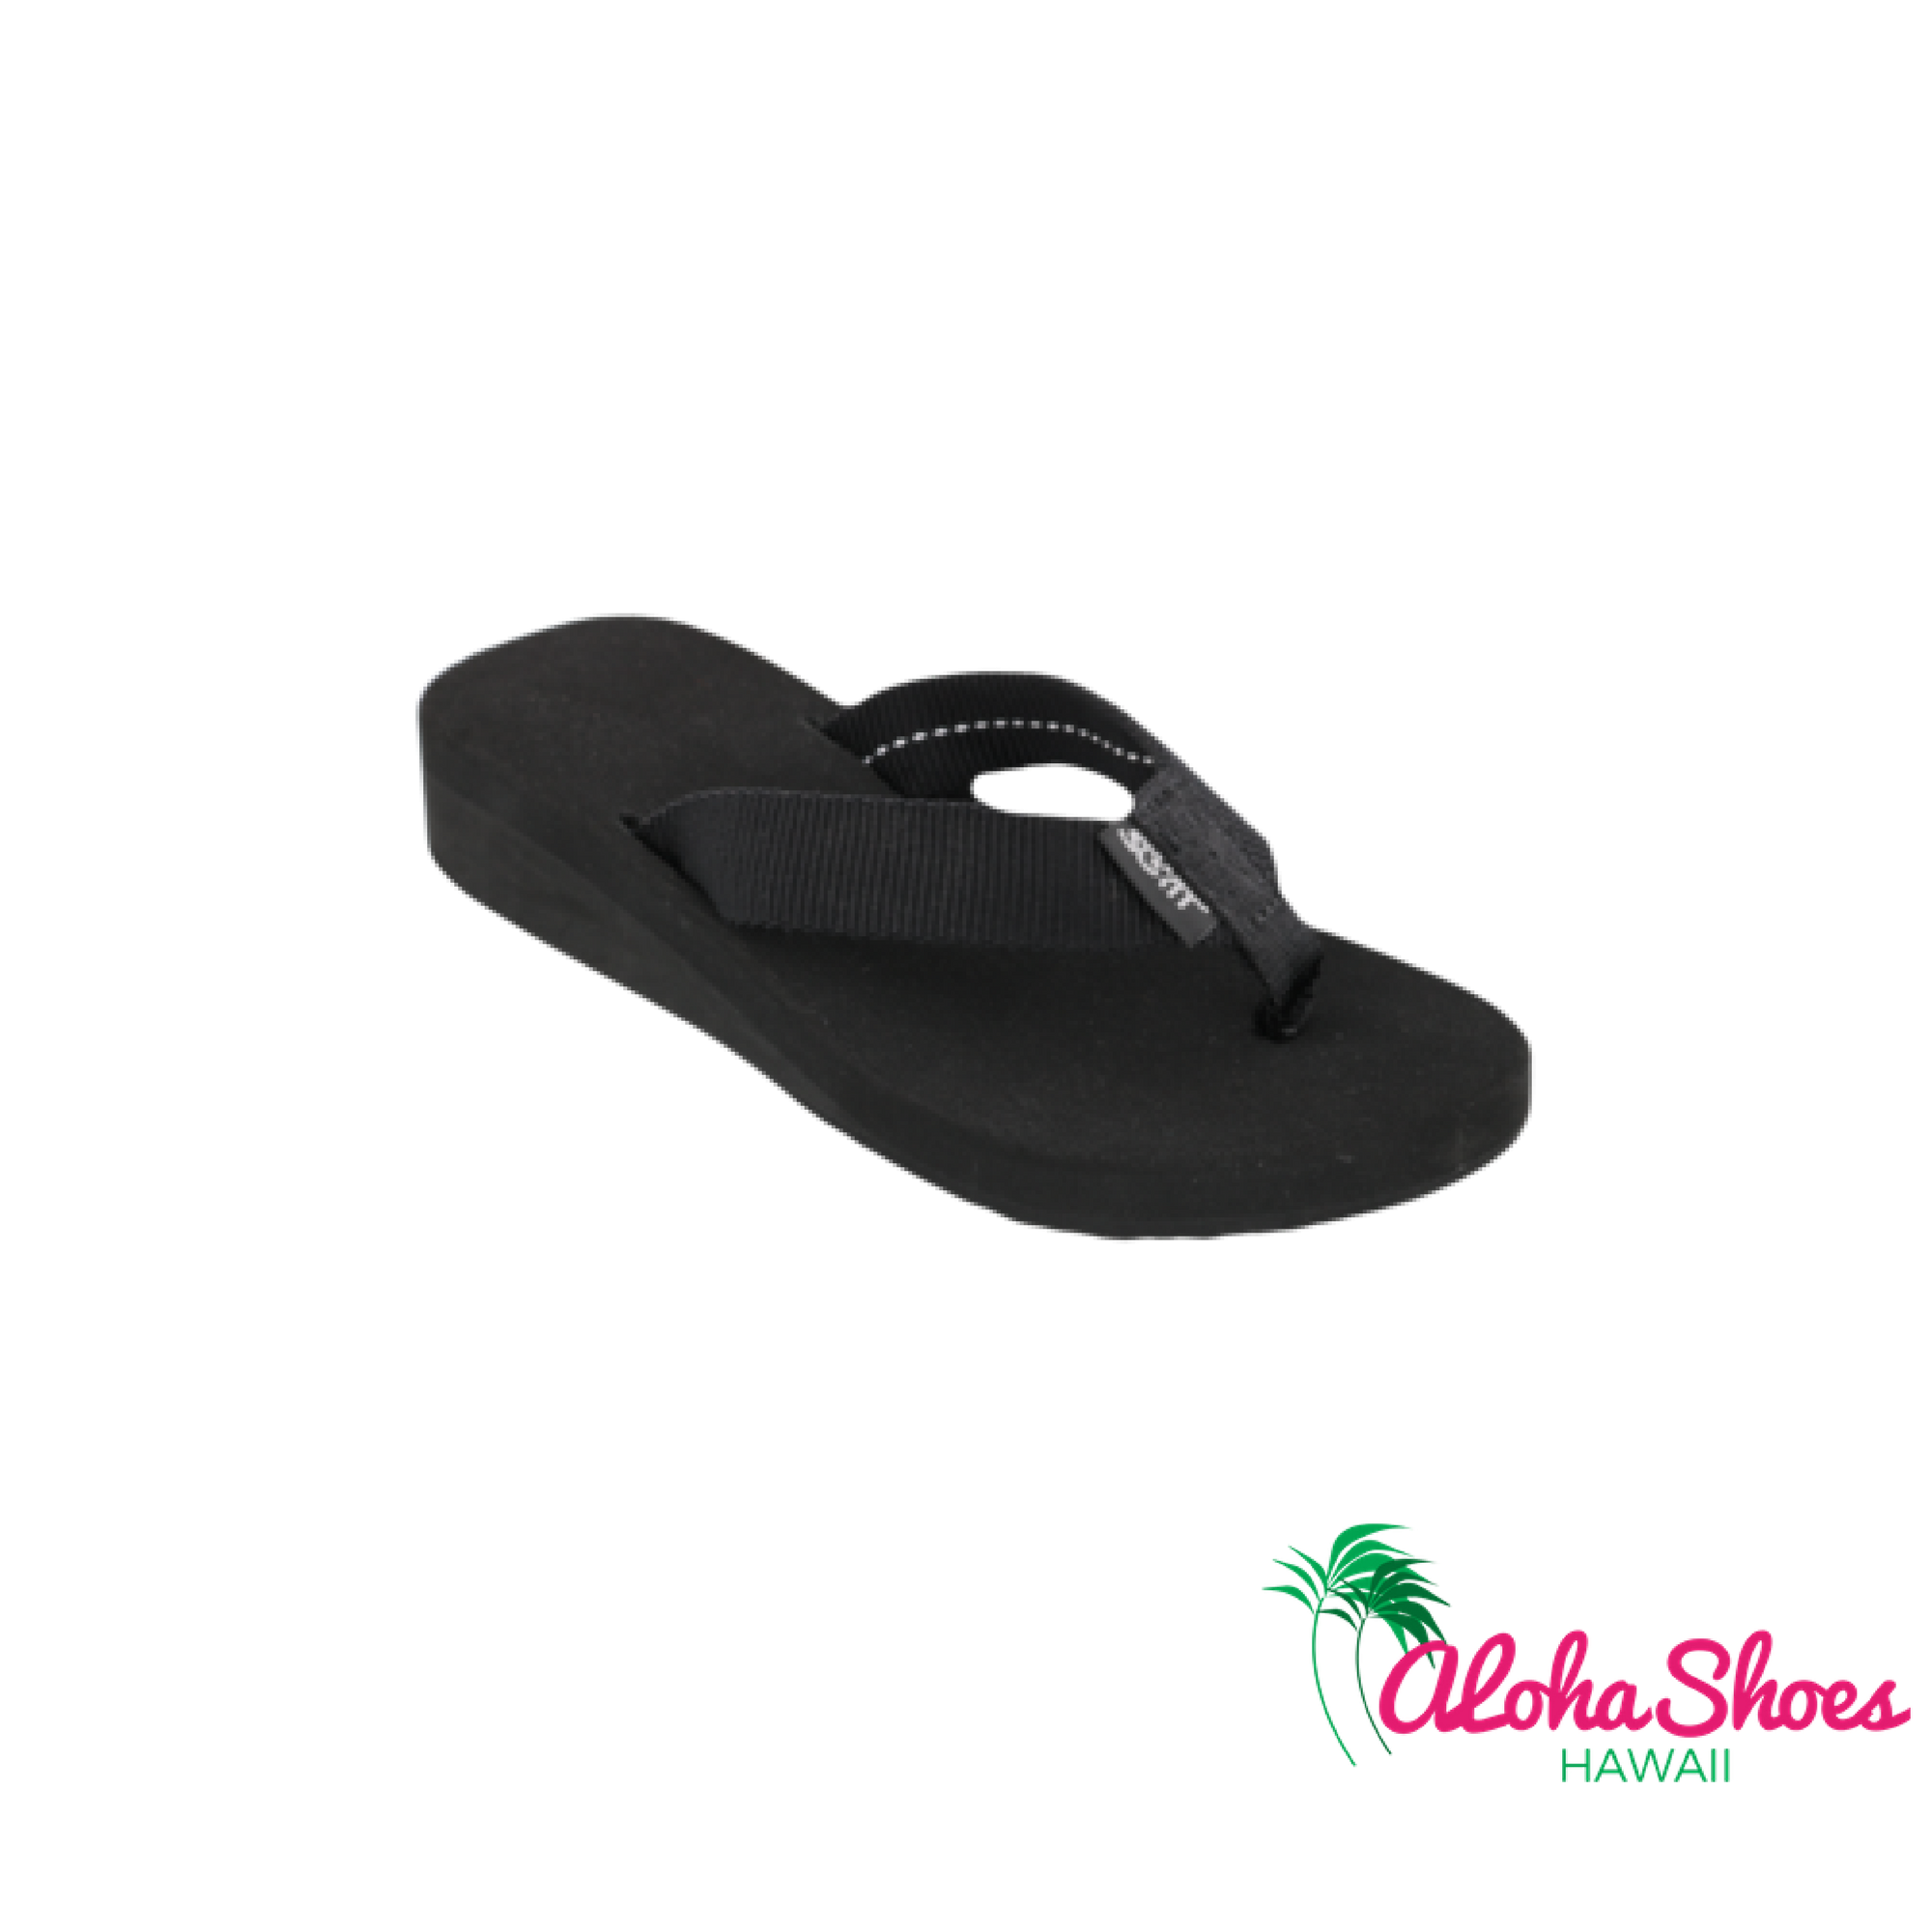 Scott Hawaii Girl's Flip Flops Ele Ele Wedge - AlohaShoes.com